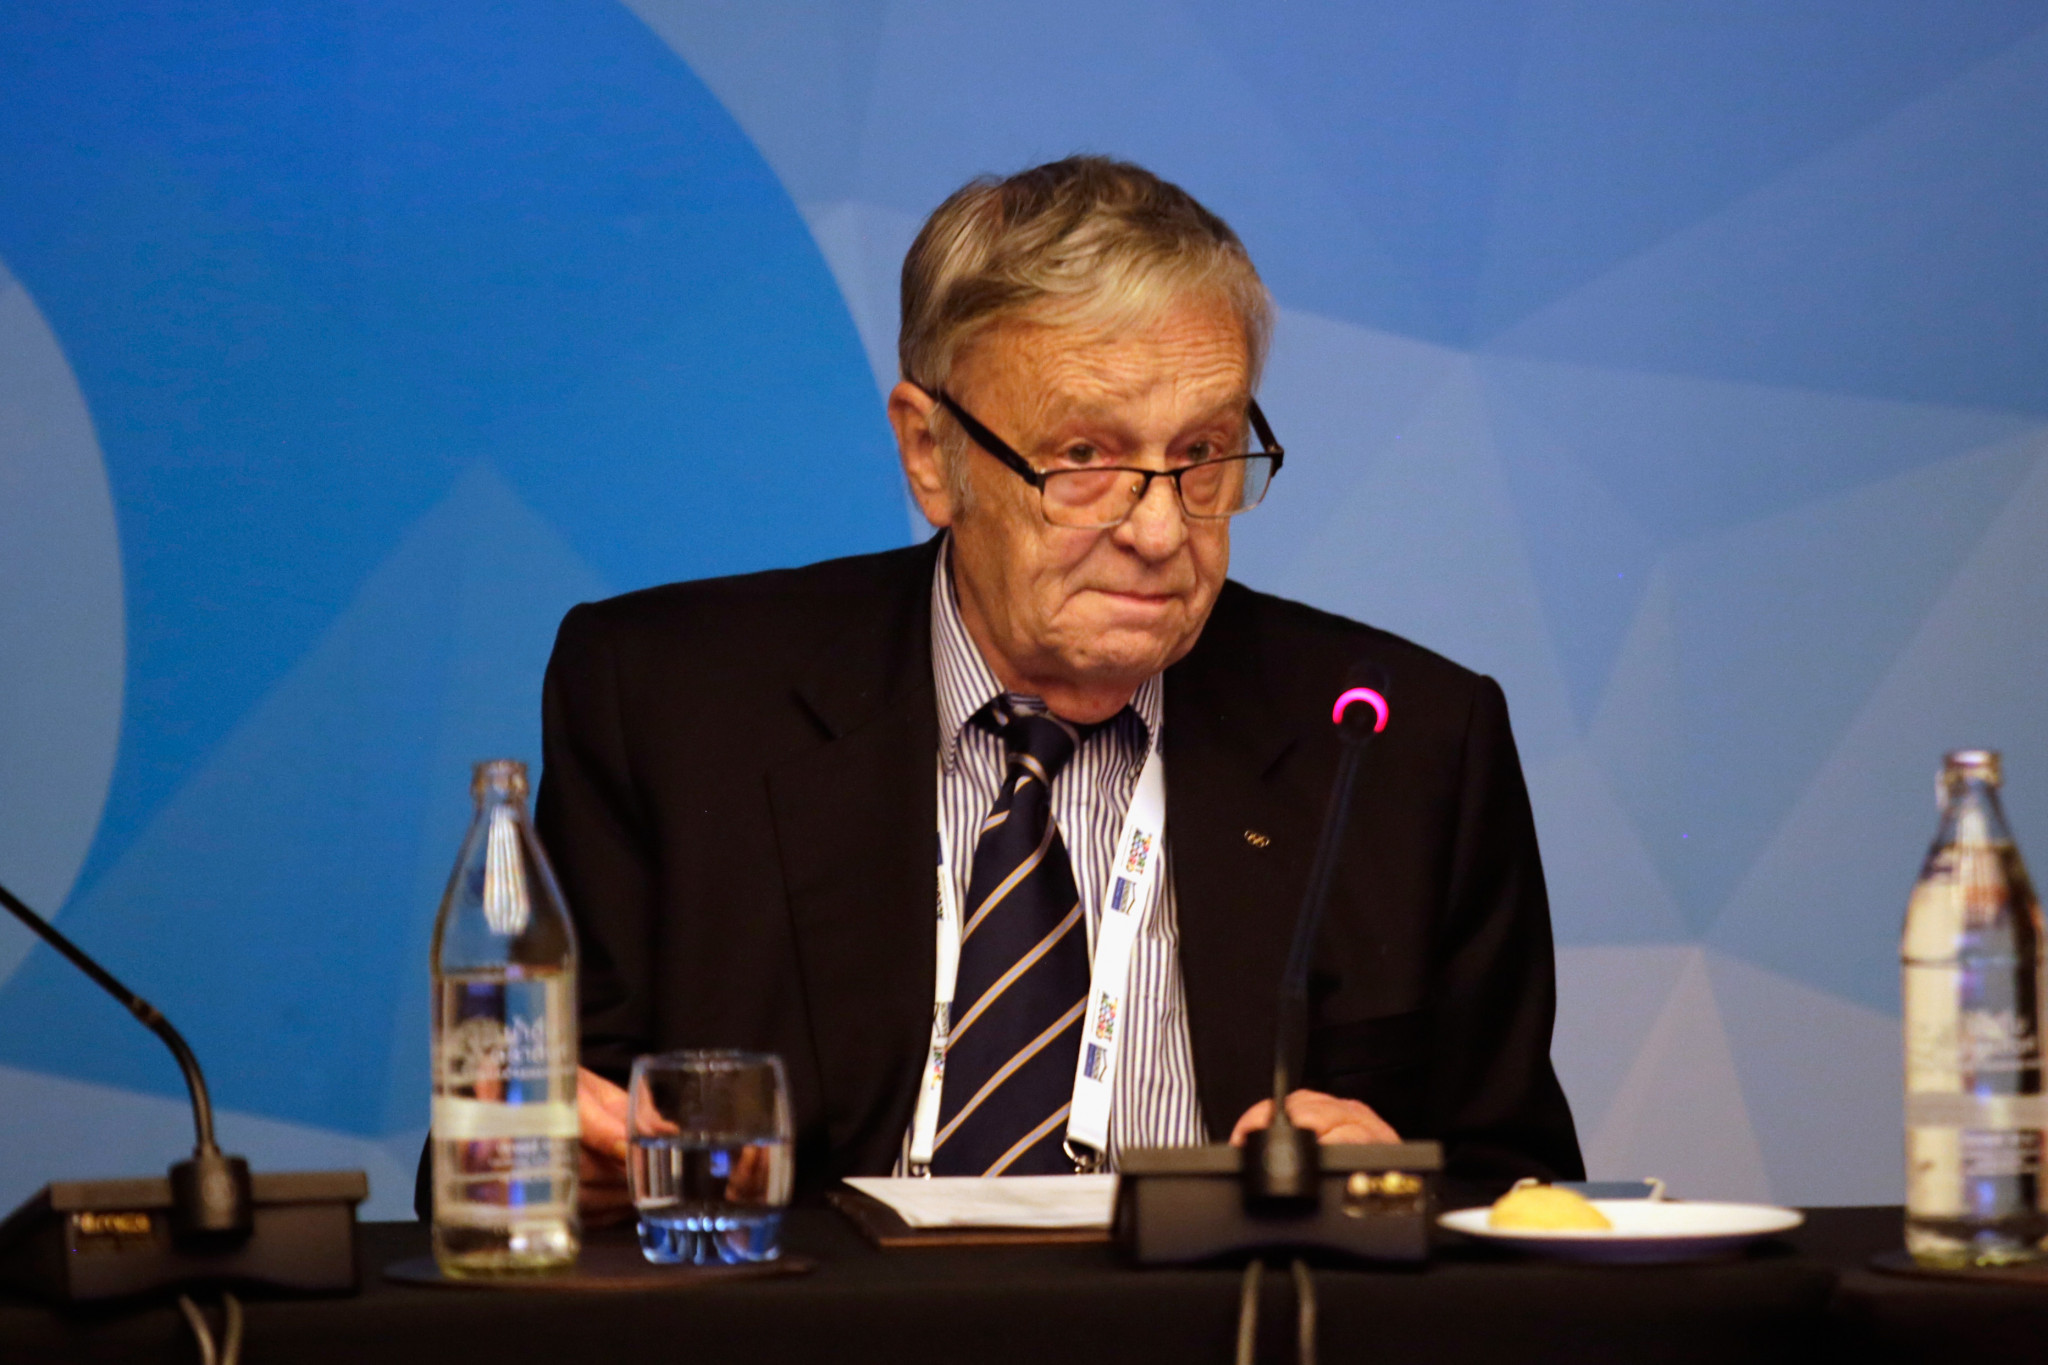 AIOWF and FIS President Gian Franco Kasper claims governance of International Federations continue to evolve ©Getty Images